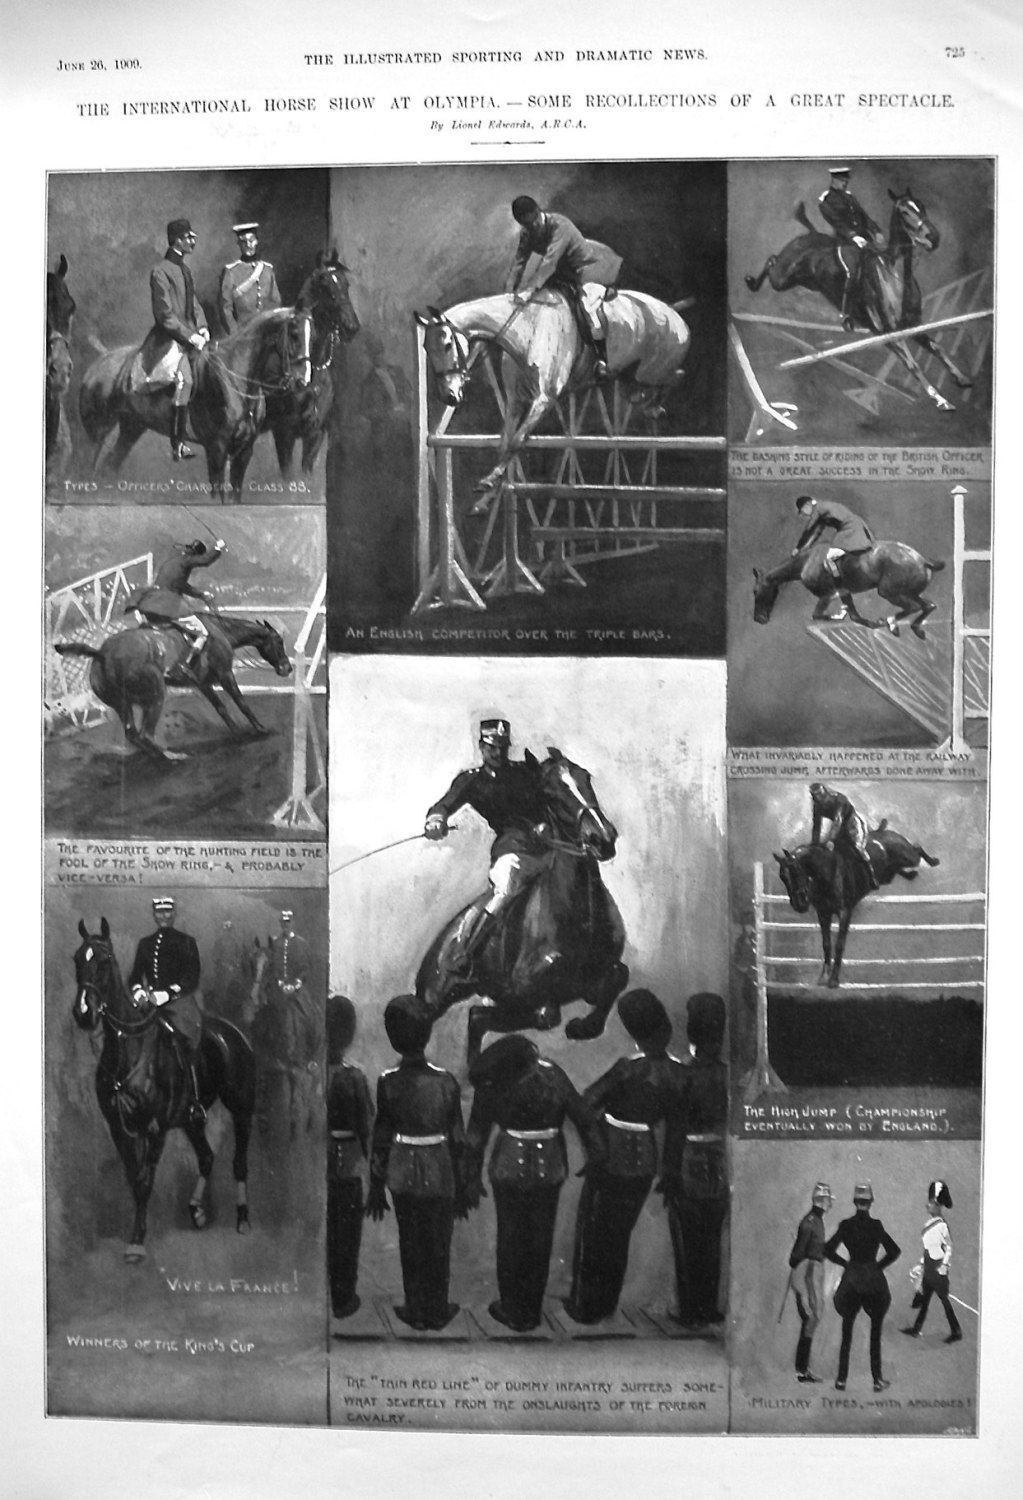 The International Horse Show at Olympia. - Some Recollections of a Great Sp